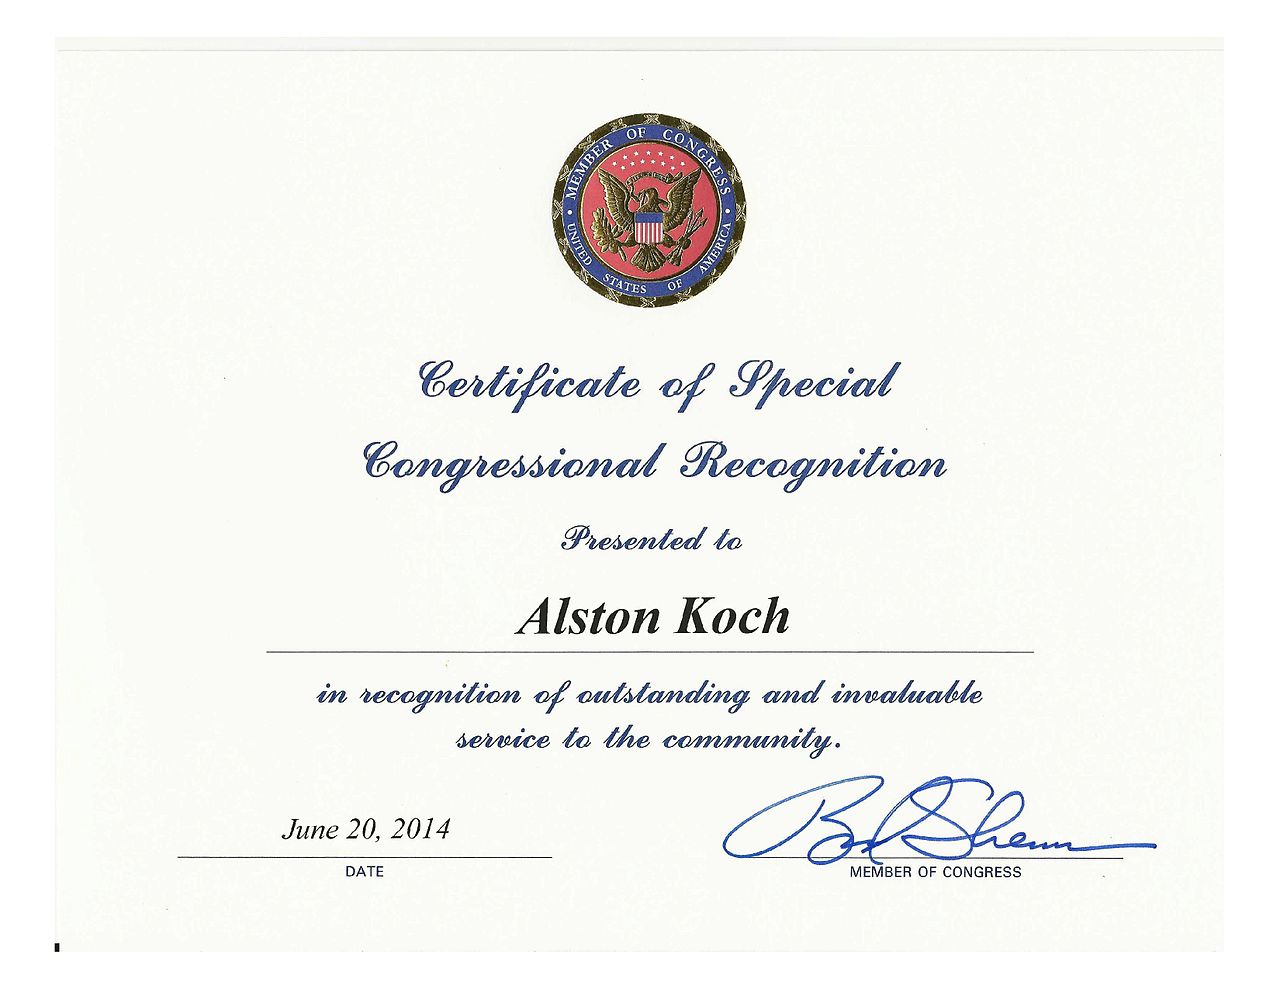 Filecertificate of special congressional recognition to alston koch filecertificate of special congressional recognition to alston kochg yelopaper Gallery